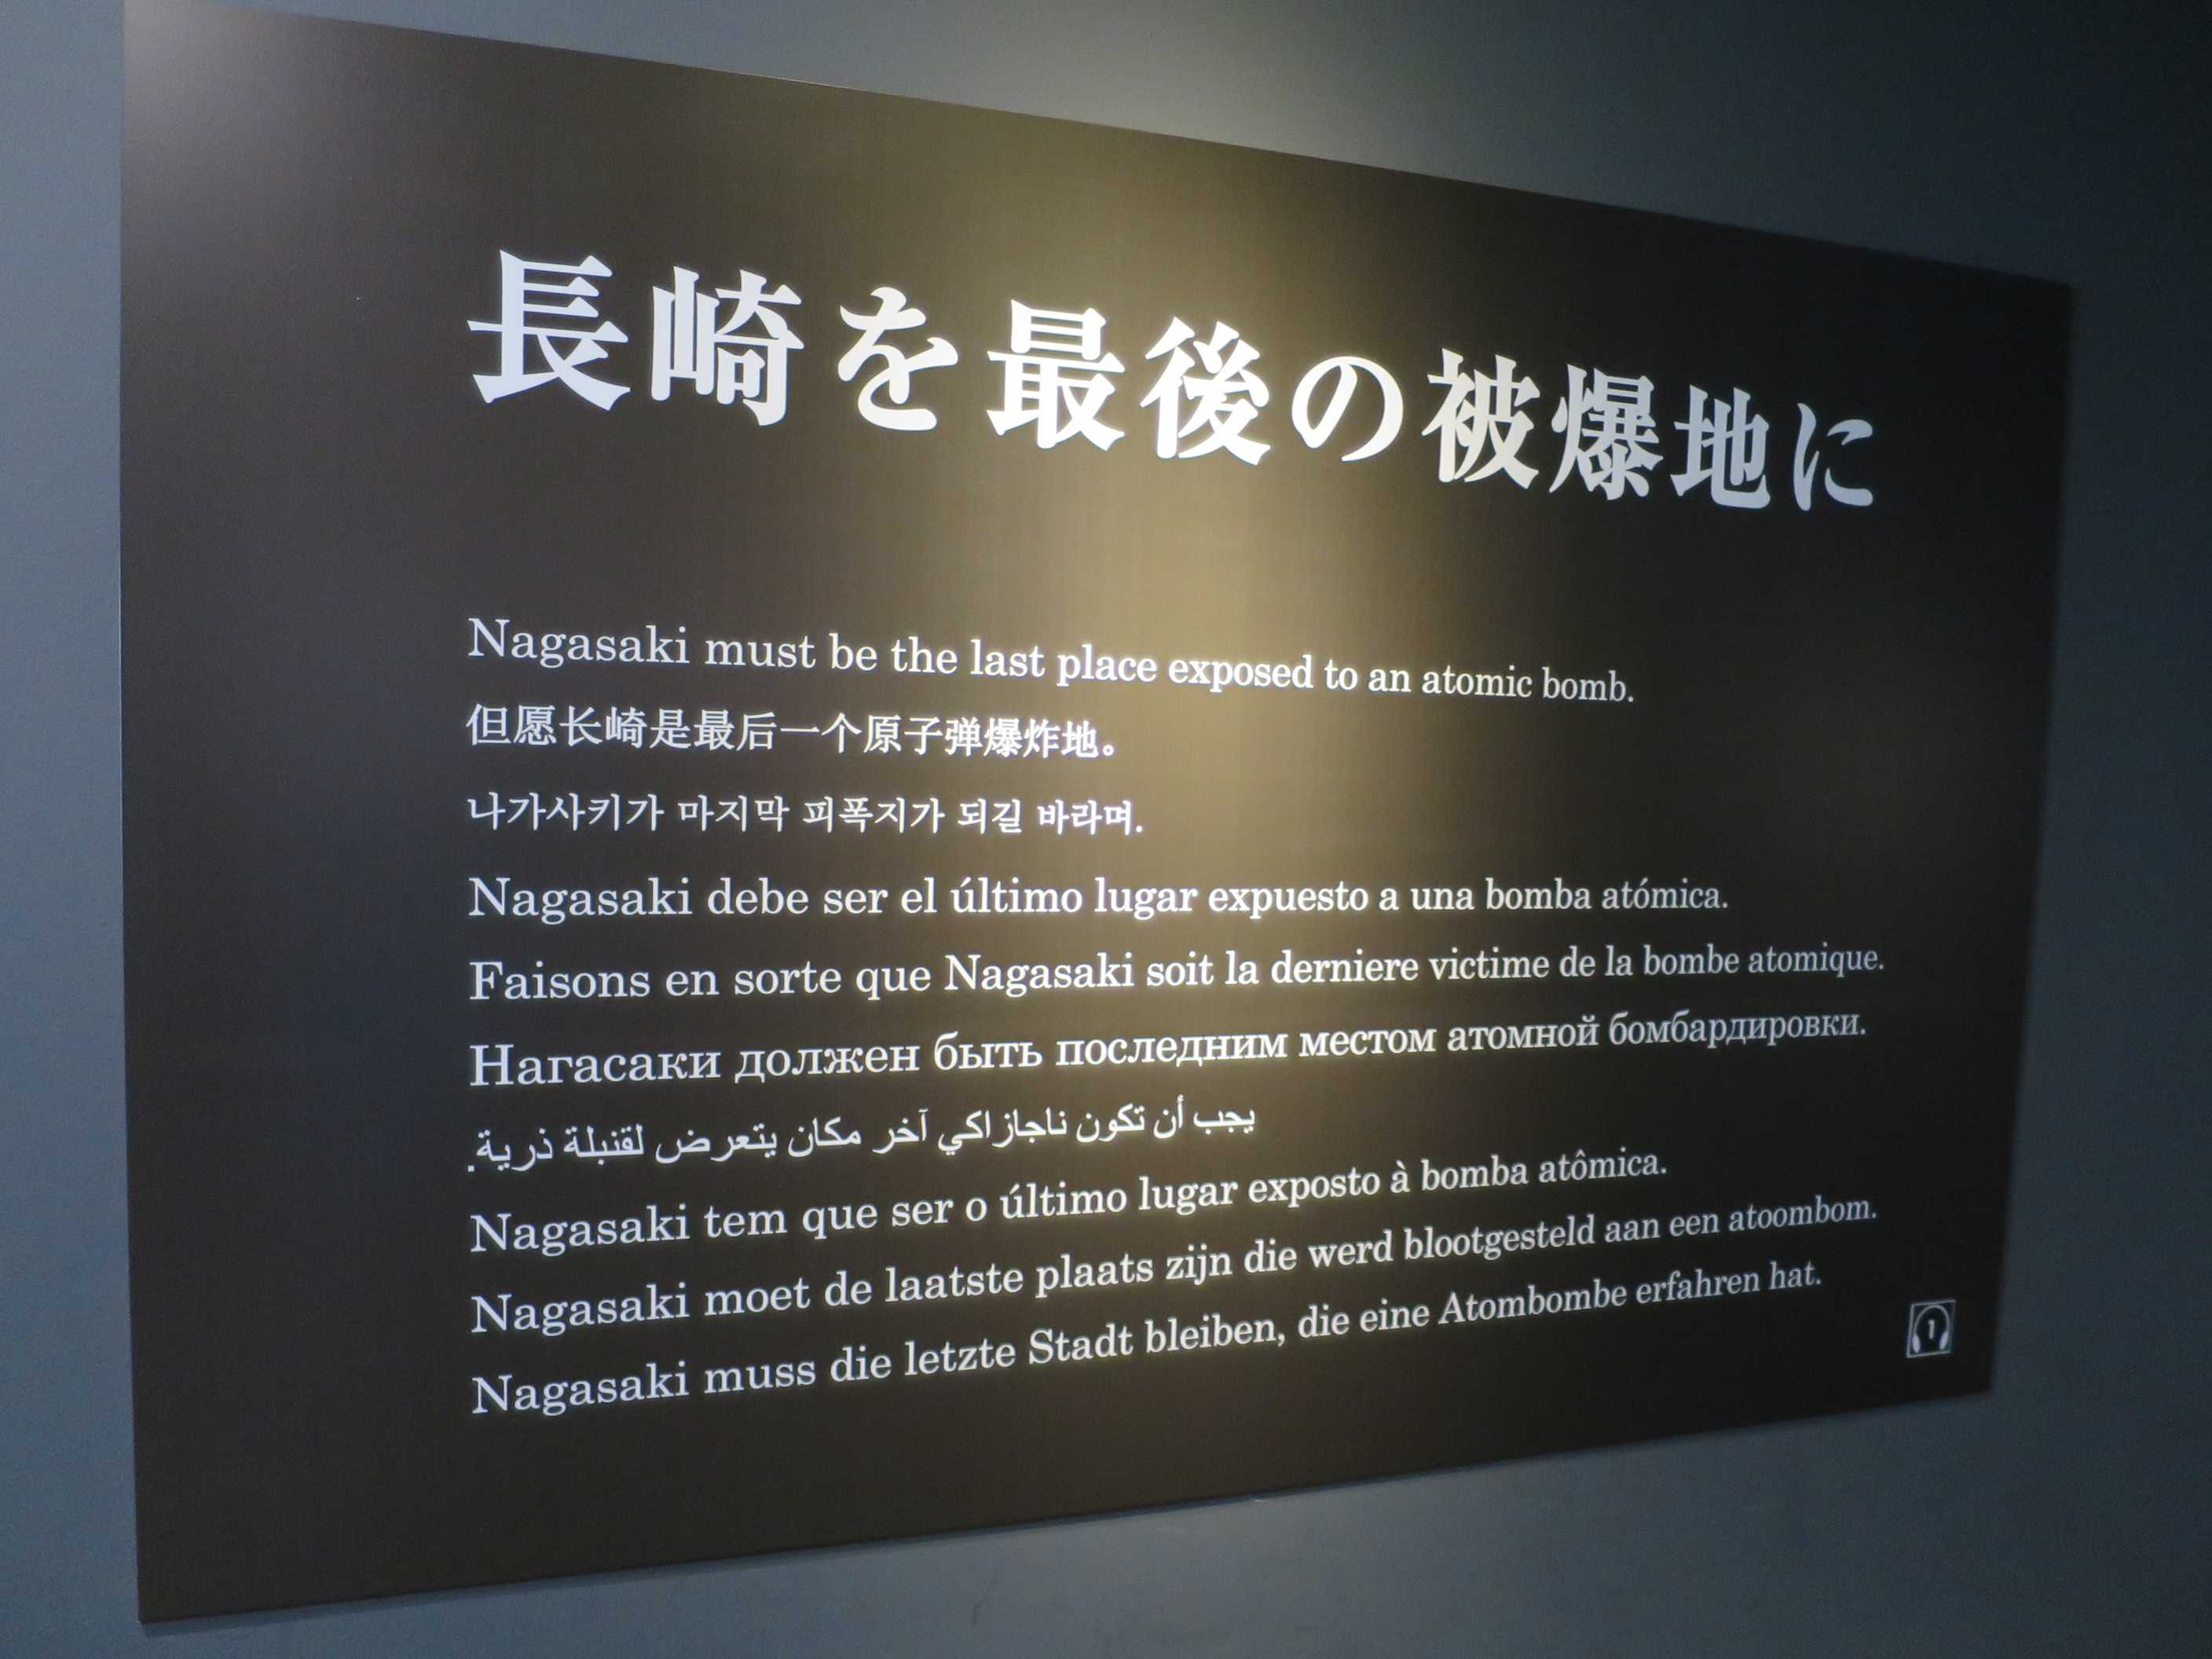 長崎を最後の被爆地に - Nagasaki must be the last place exposed to an atomic bomb.